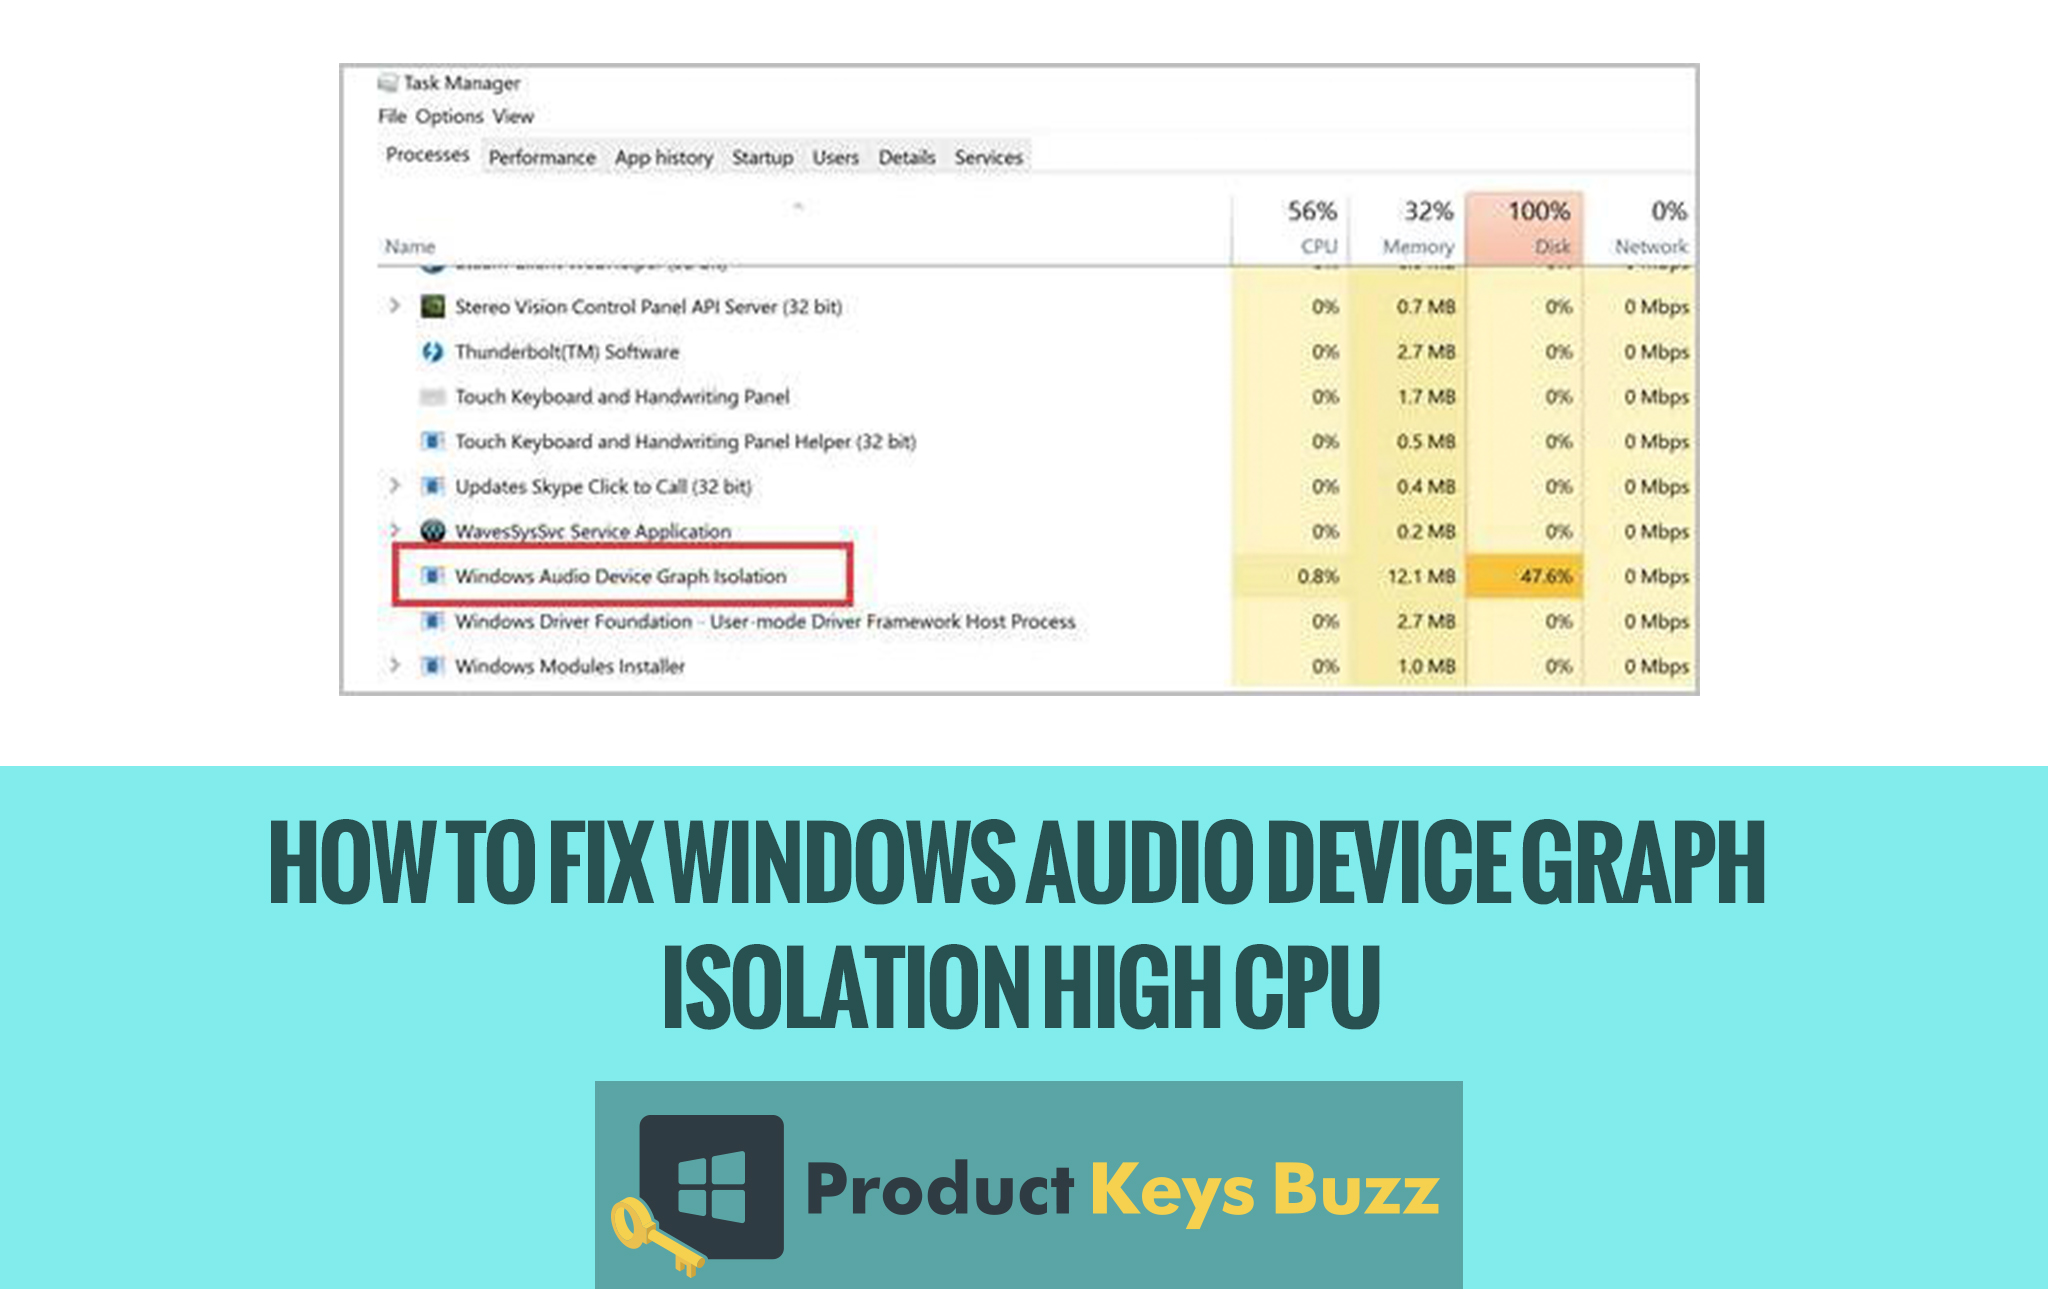 How to Fix Windows Audio Device Graph Isolation High CPU?